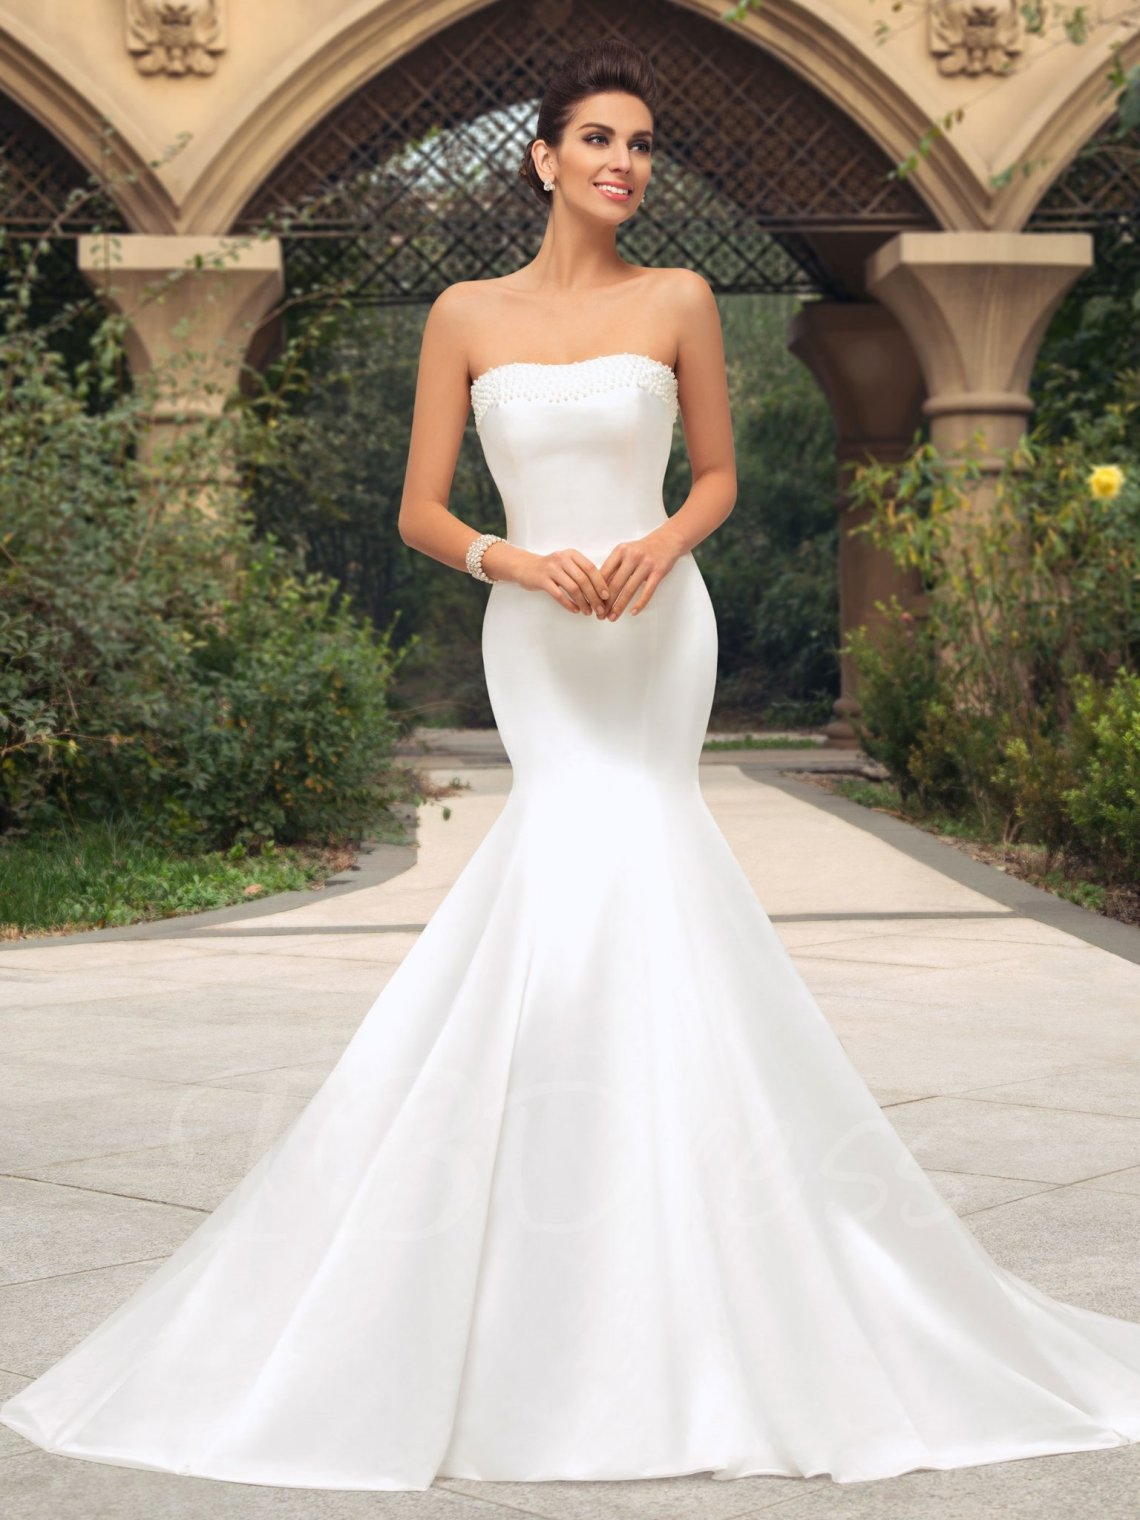 Check Out 8 Wedding Gown Styles,Their Names And Ideal Body ...